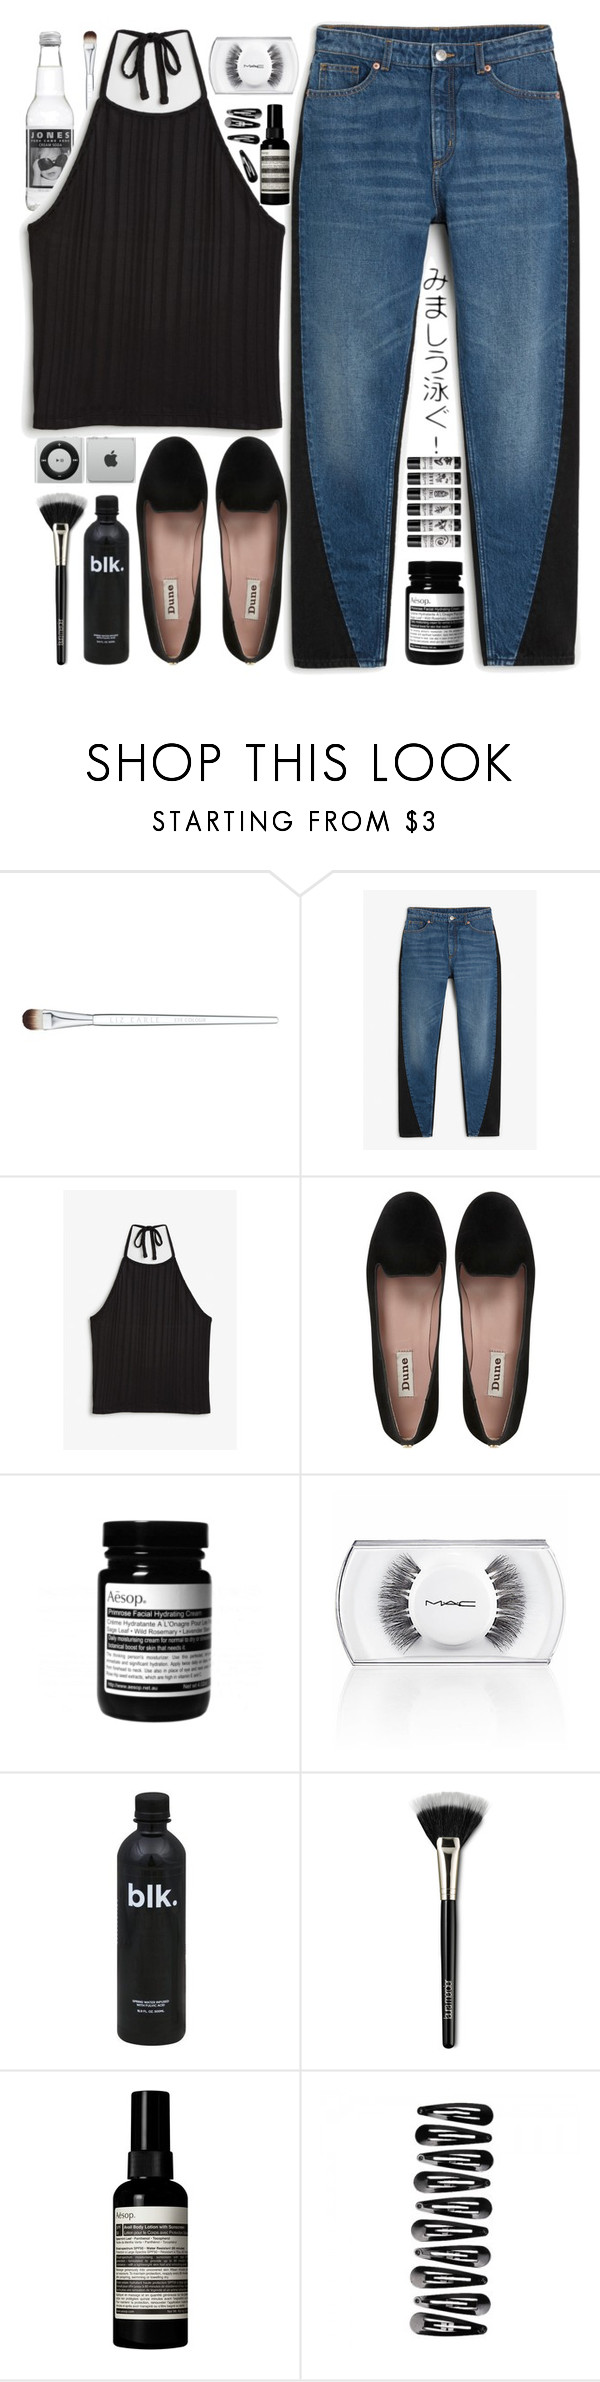 """""""Would you be my Paradise?"""" by my-black-wings ❤ liked on Polyvore featuring Liz Earle, Monki, Dune, MAC Cosmetics, Laura Mercier and Aesop"""